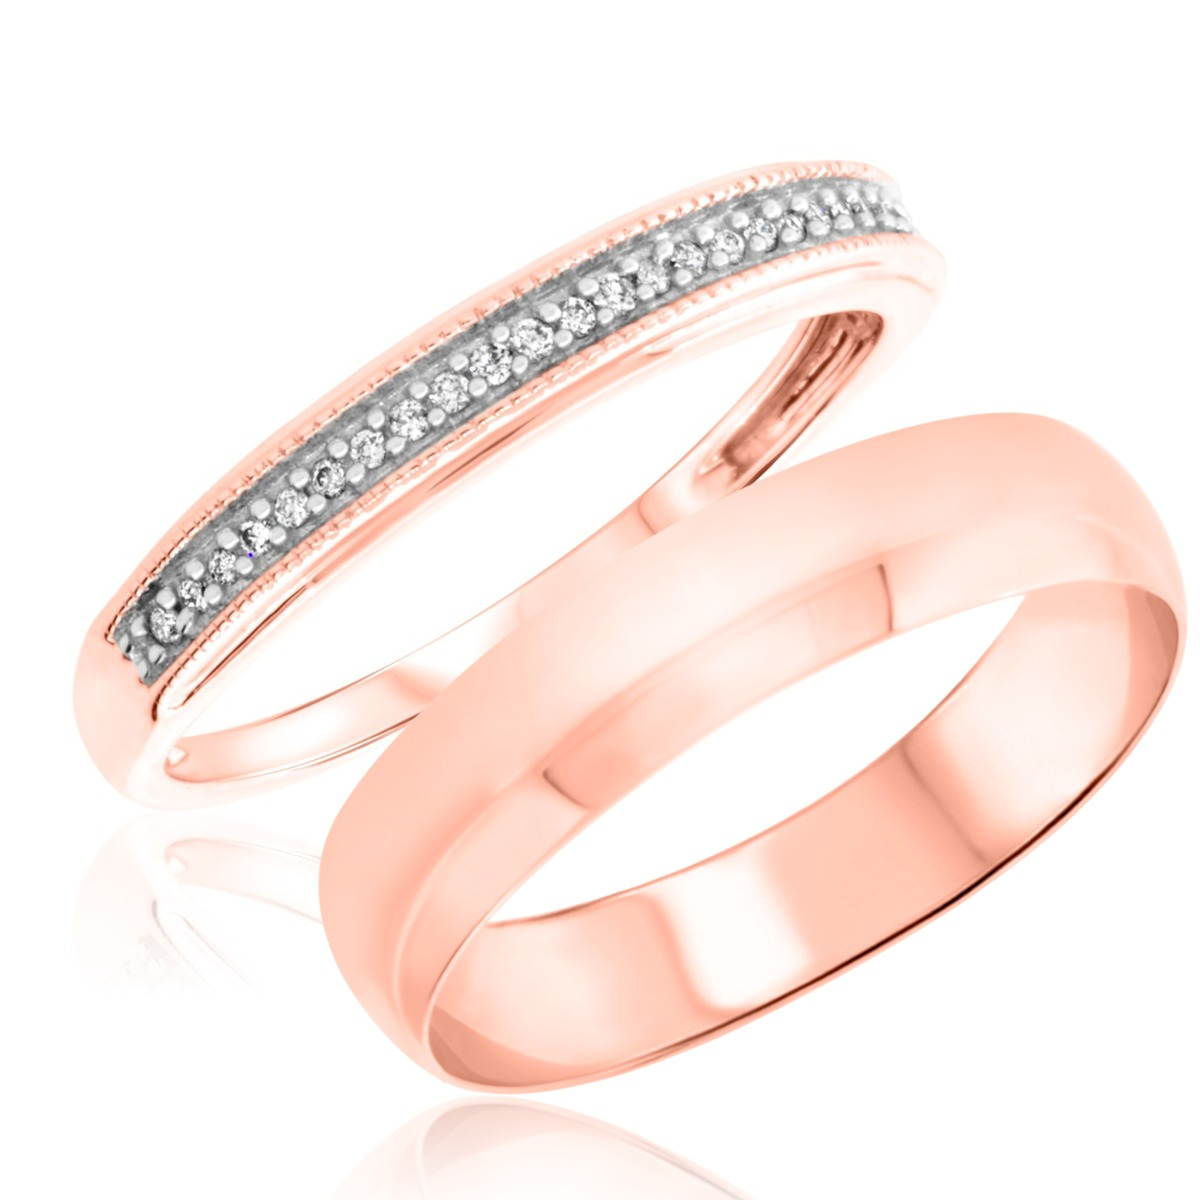 1/10 Carat T.W. Round Cut Diamond His and Hers Wedding Band Set 14K Rose Gold